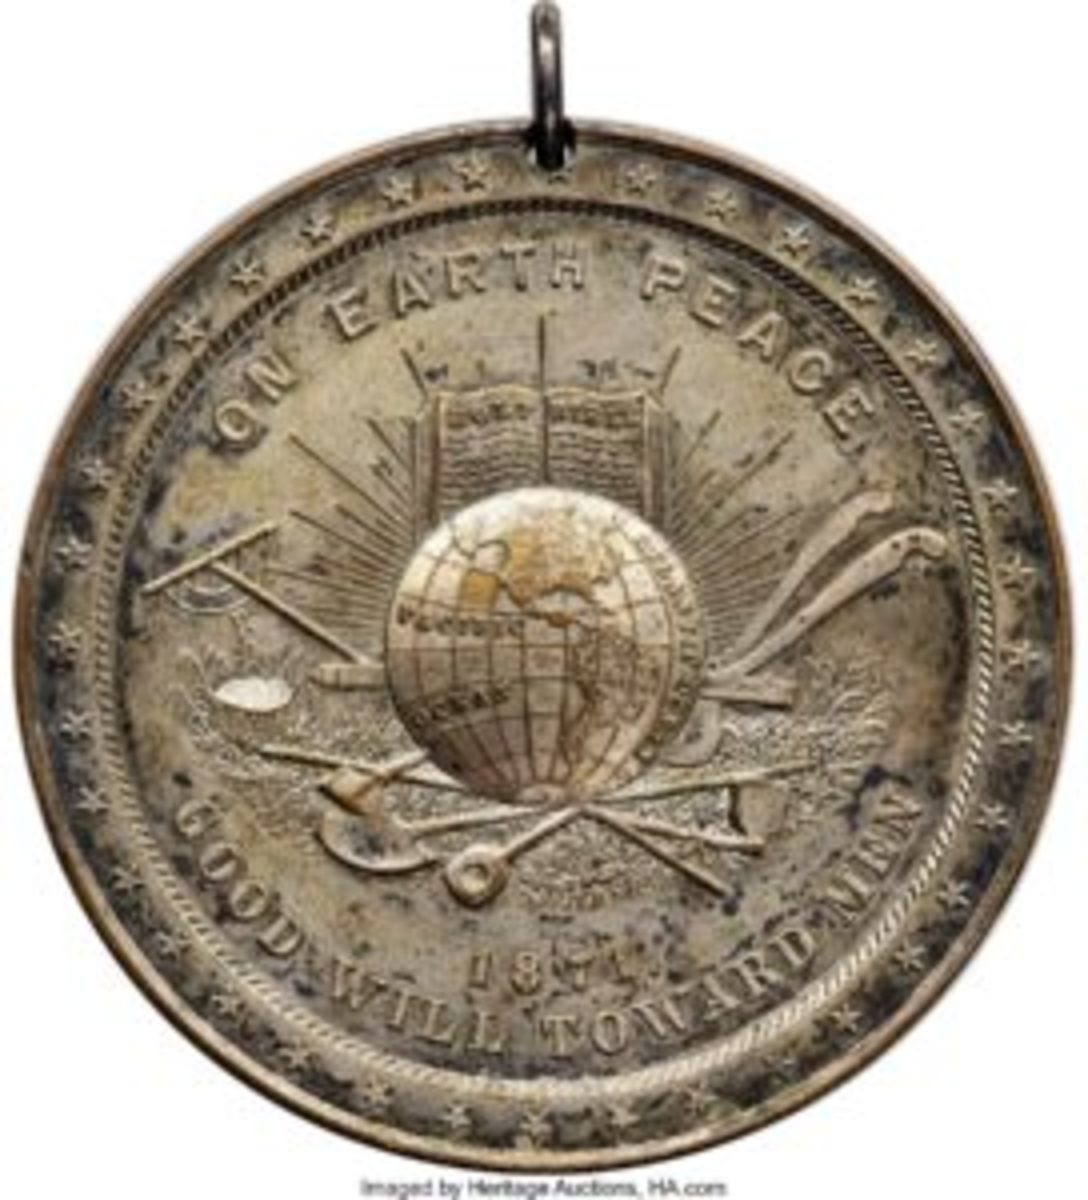 Beginning with Fillmore, Peace Medals changed the reverse from the previous PEACE AND FRIENDSHIP handshake design to the more instructive LABOR VIRTUE HONOR motif.